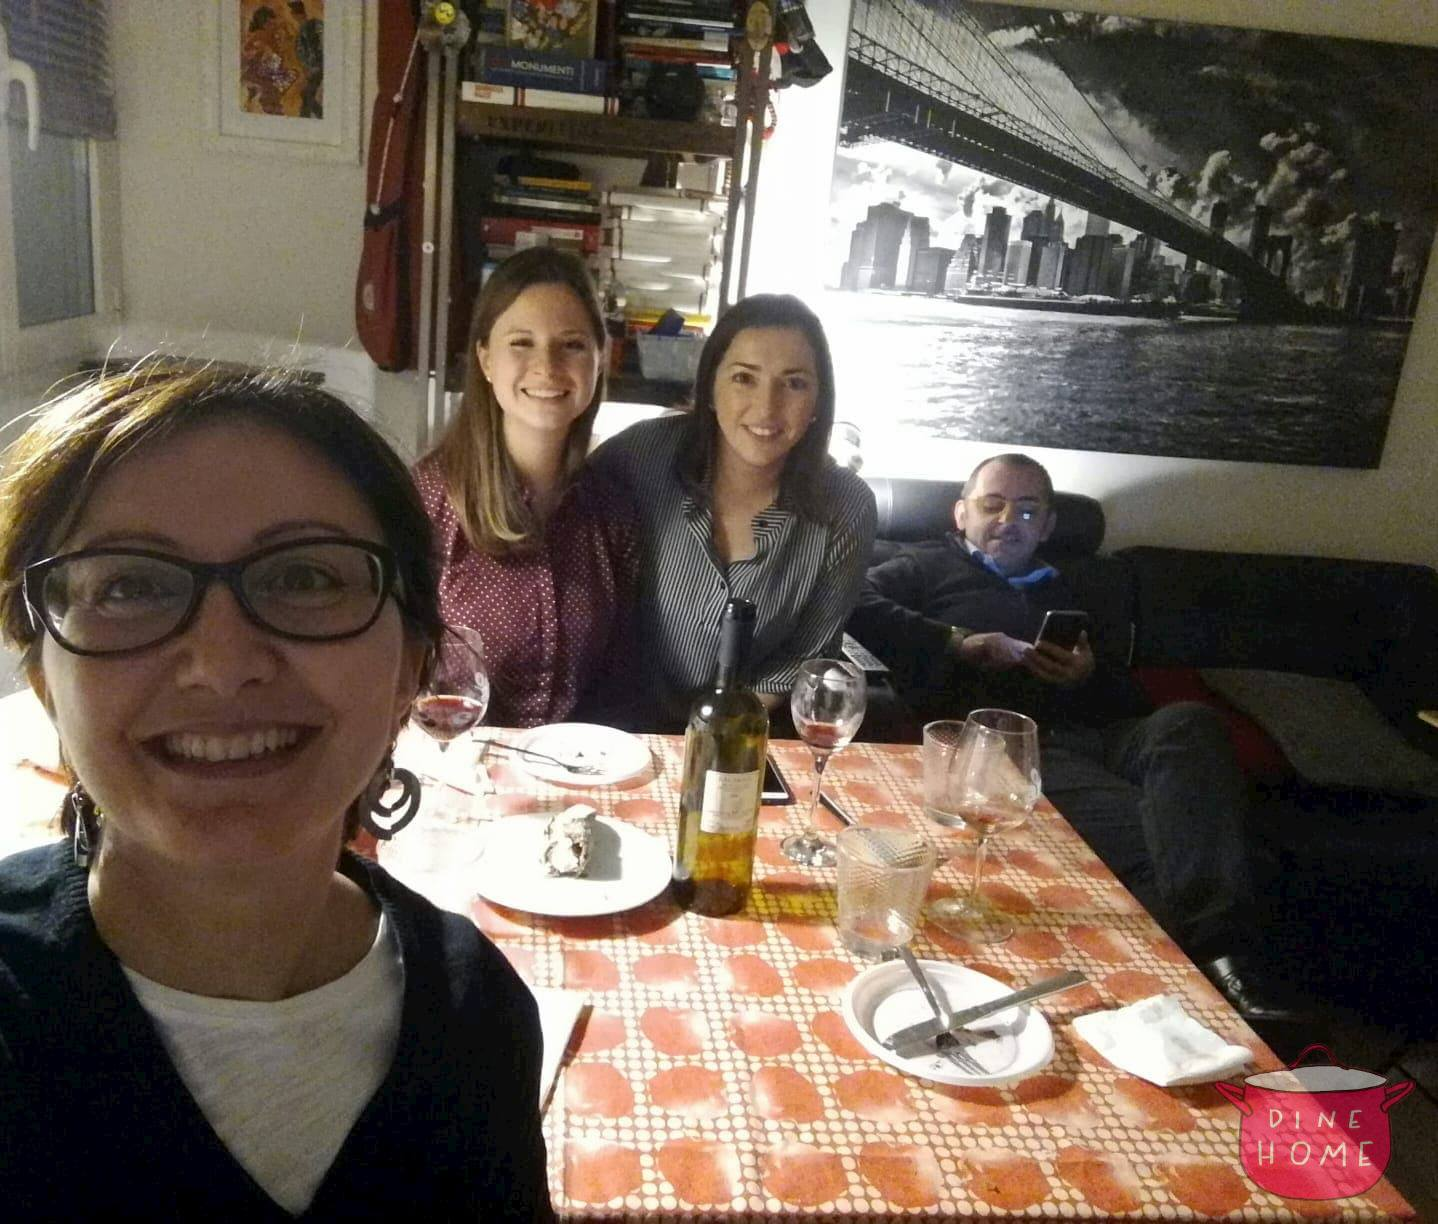 Annalena, German student, having dinner with her Dinehome family.